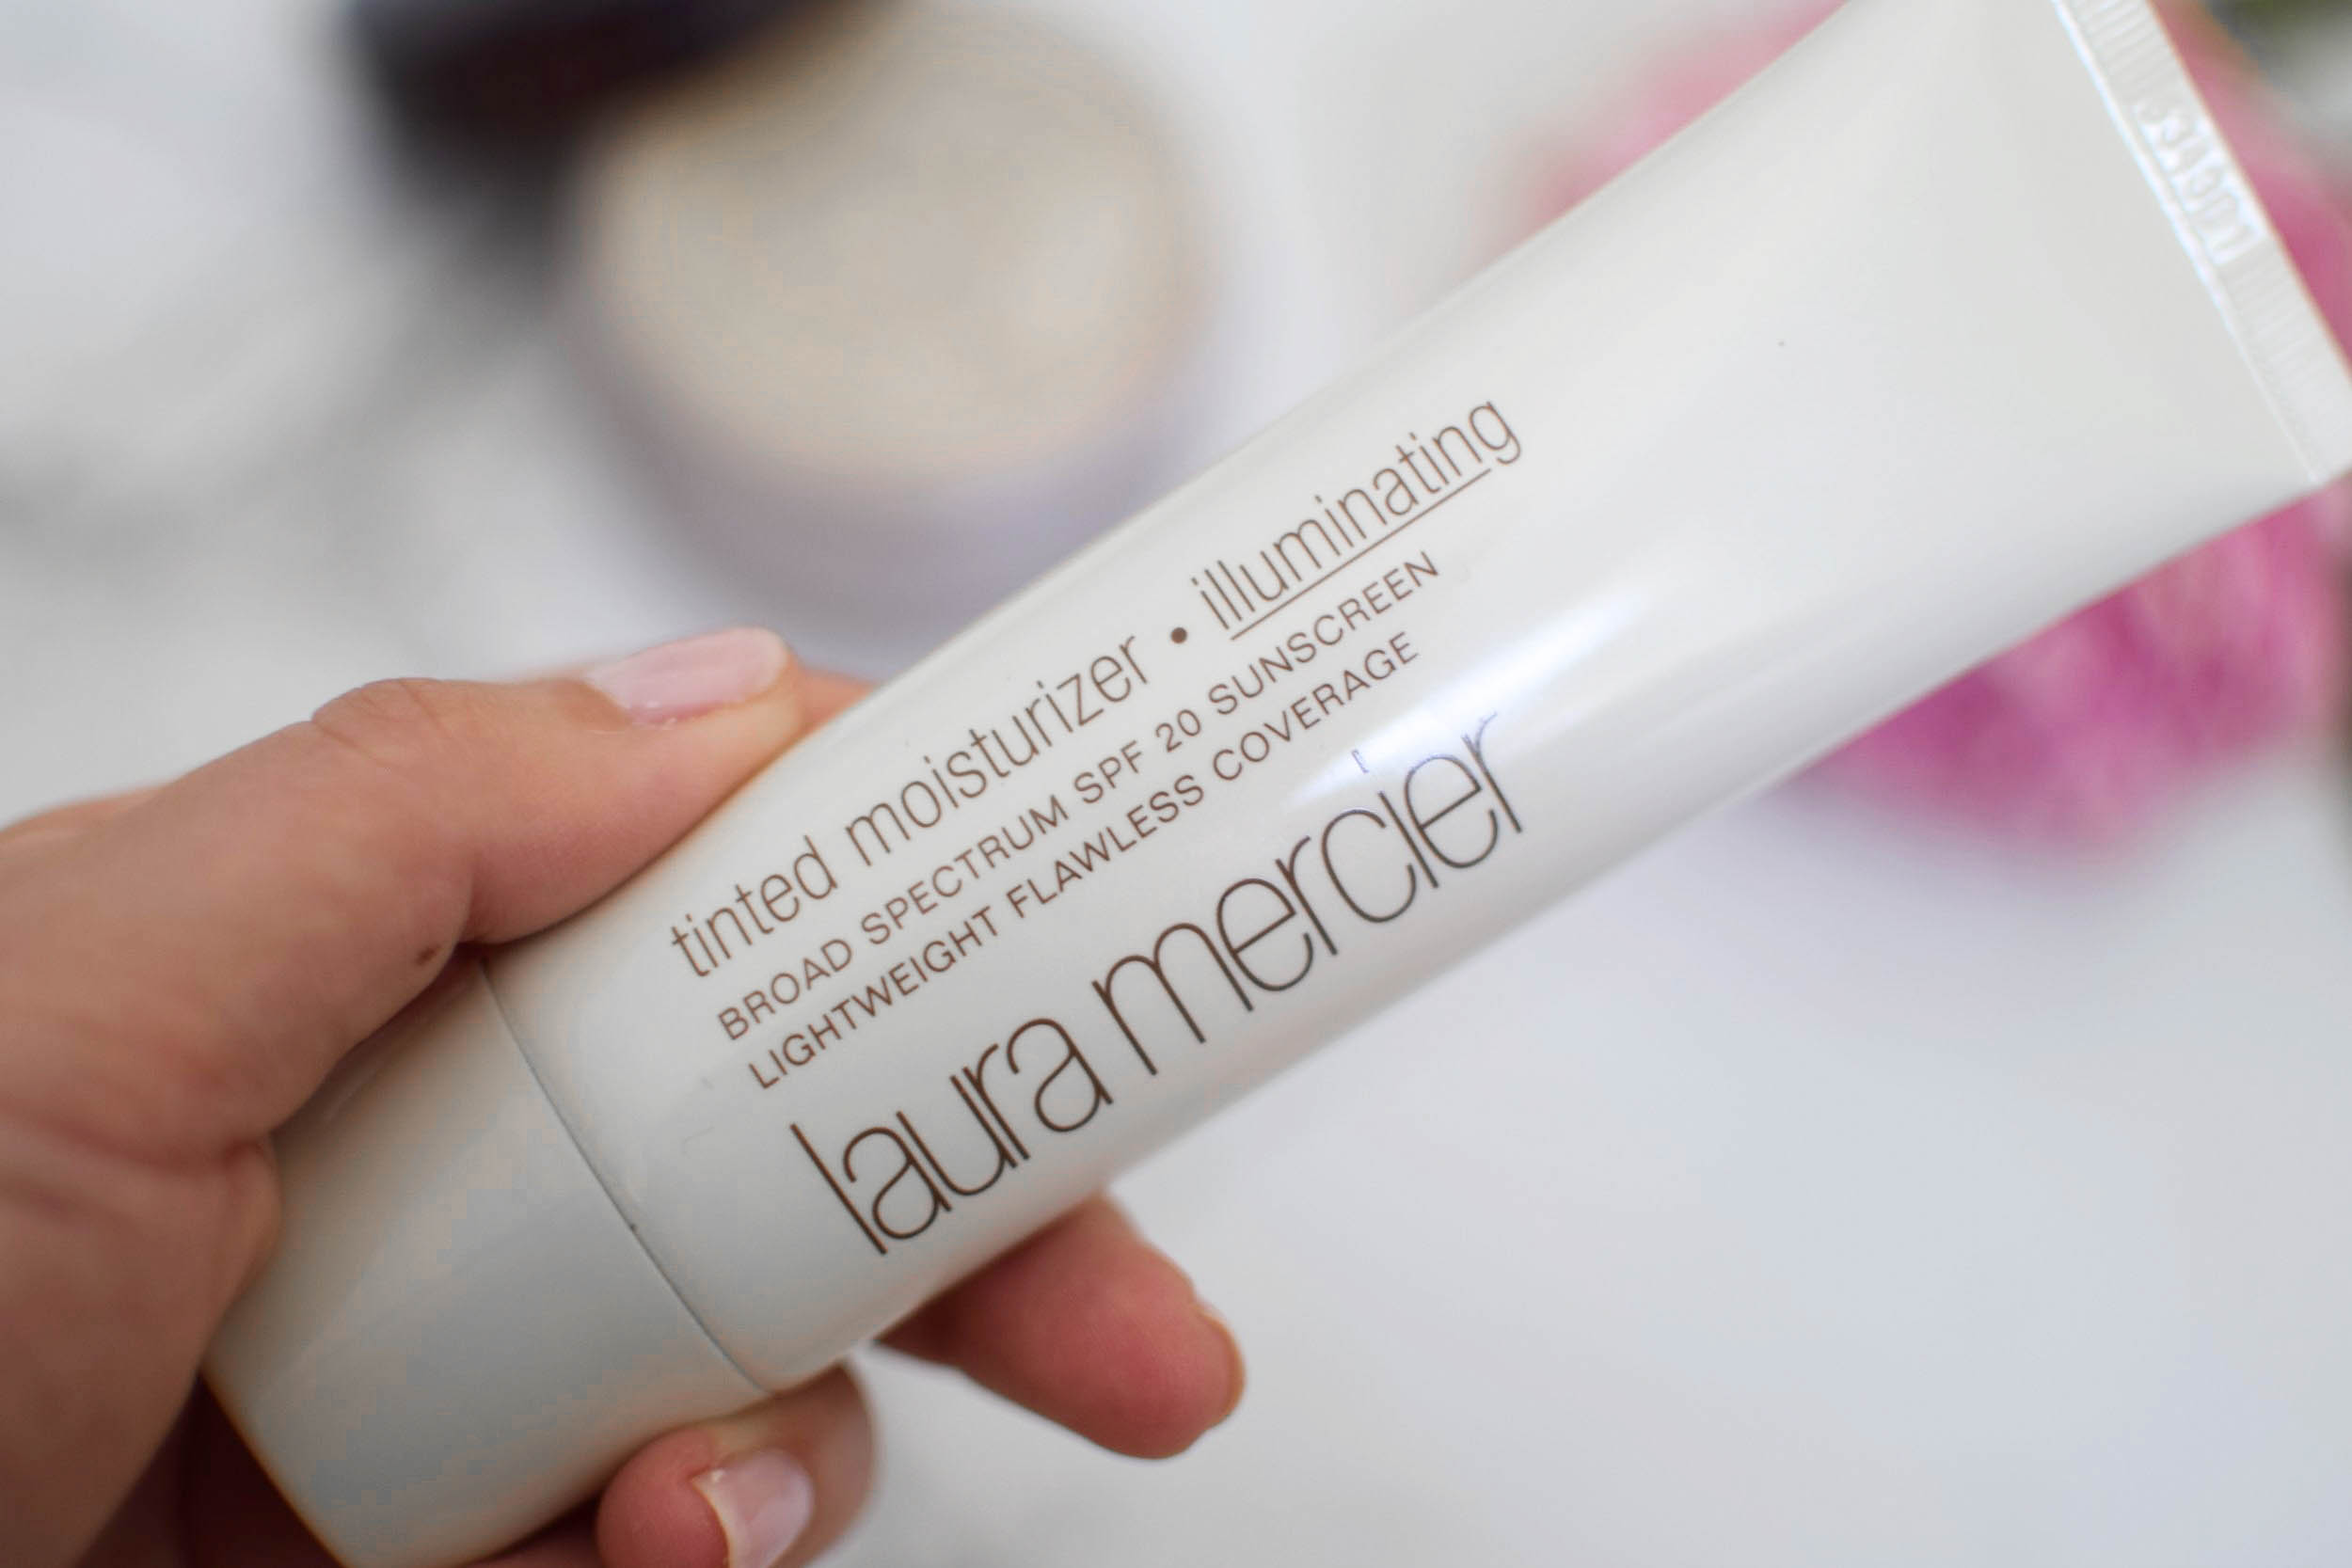 laura mercier tinted moisturizer review / beauty talk / beauty review